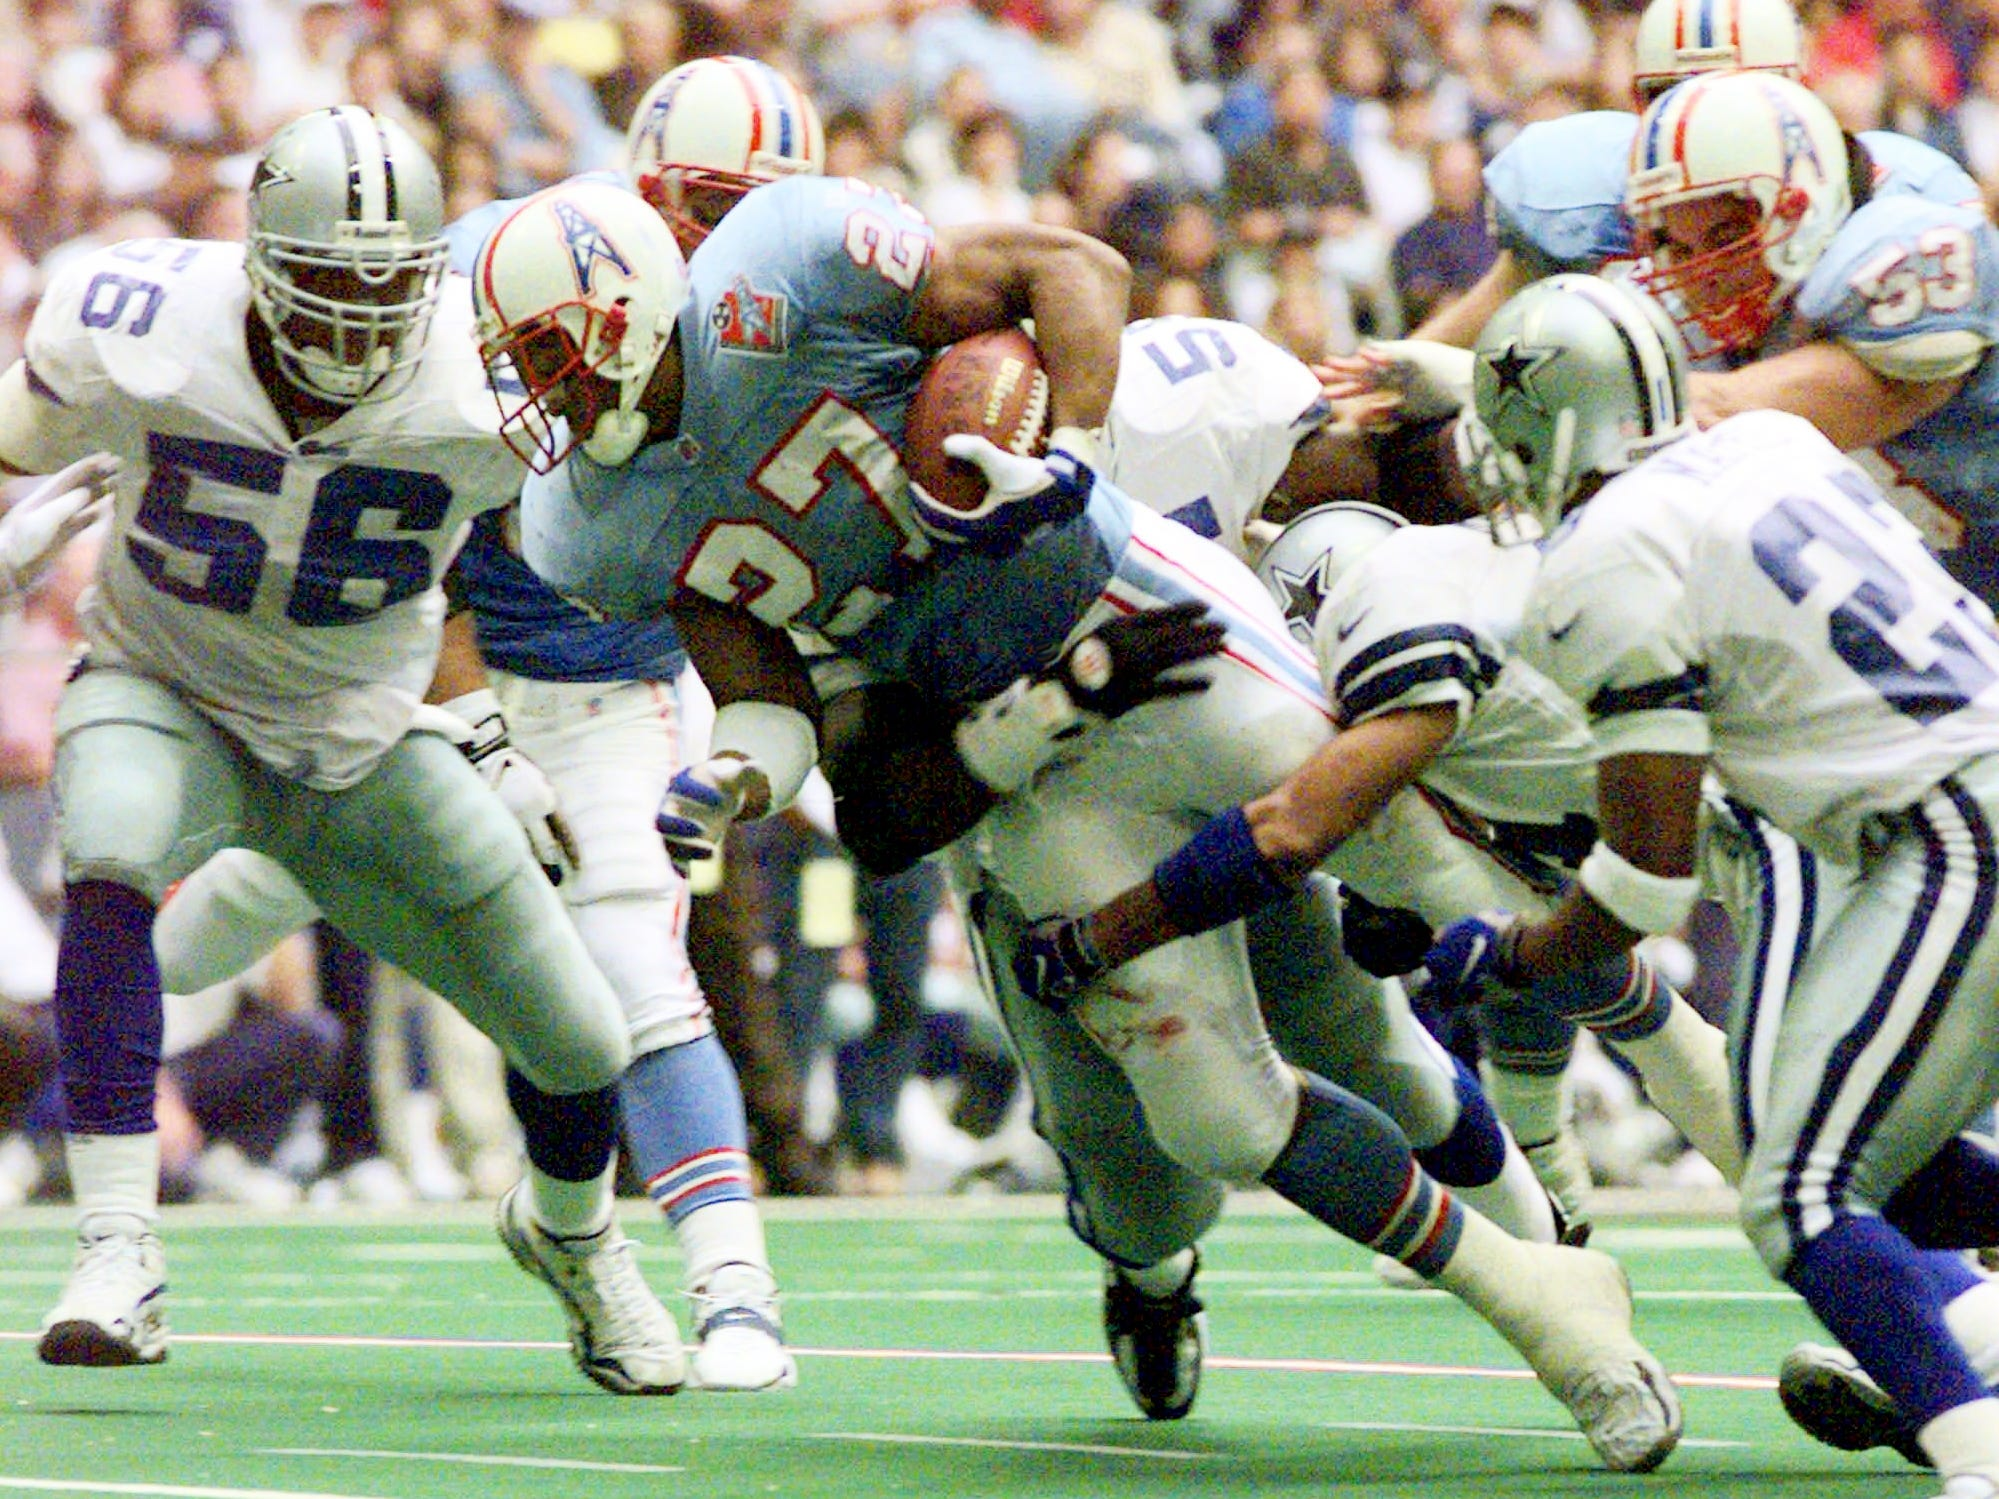 Tennessee Oilers running back Eddie George (27) is tackled by Cowboys safety Brock Marion (31) after picking up a first down in the second quarter Nov. 27, 1997 in Irving, Texas. The Oilers won, 27-14.